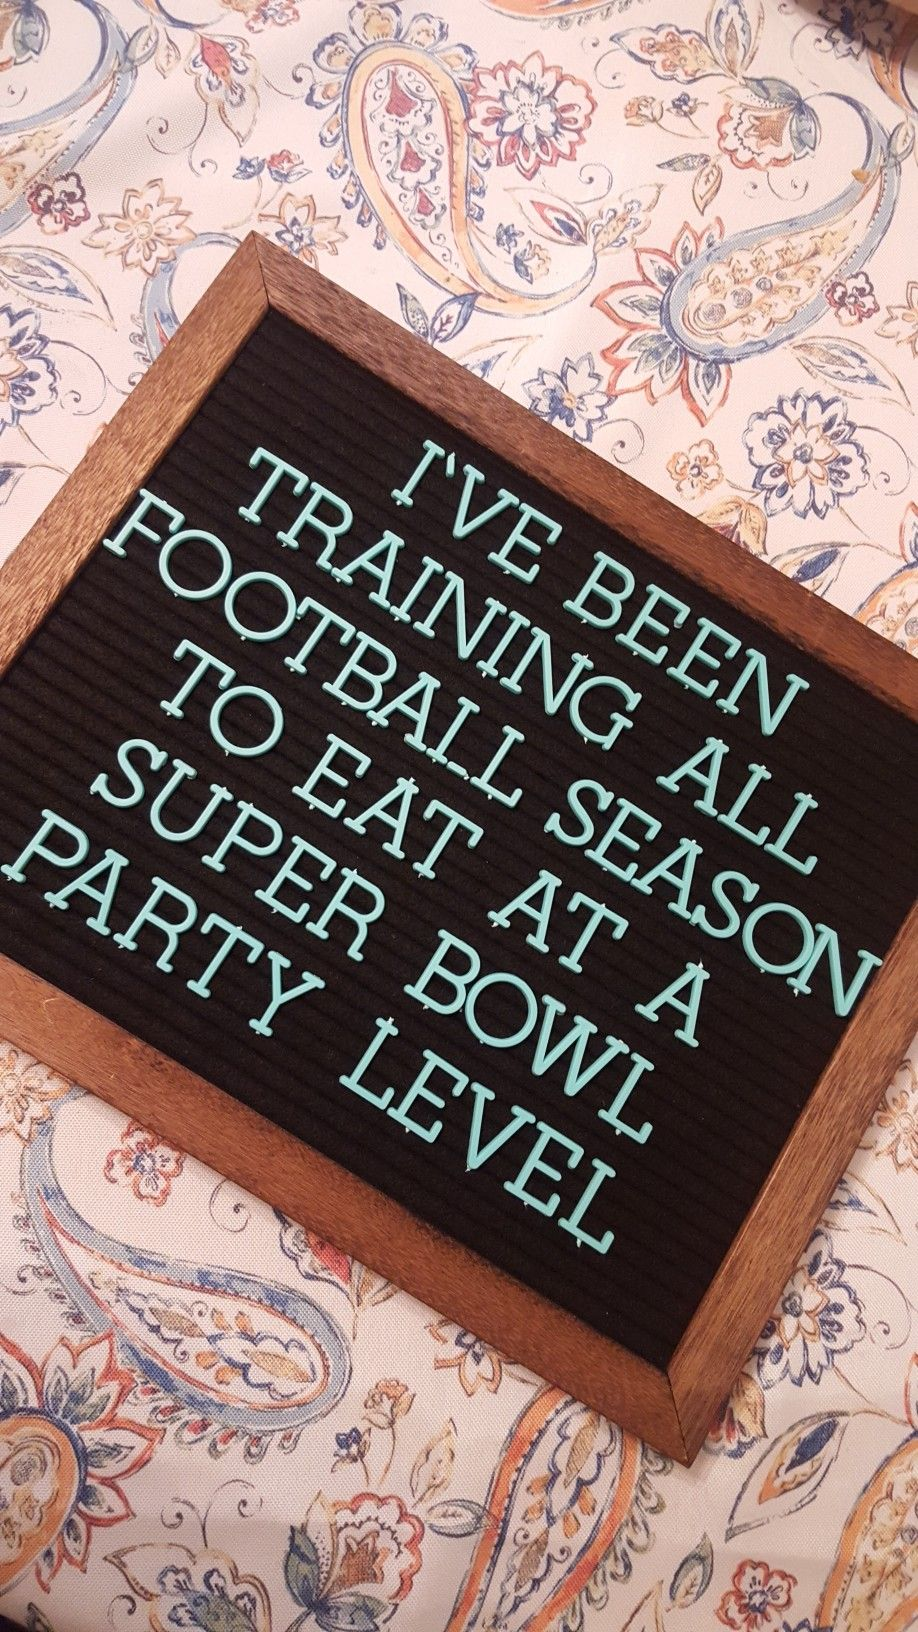 Football Message Board Quotes Felt Letter Board Football Quotes Funny